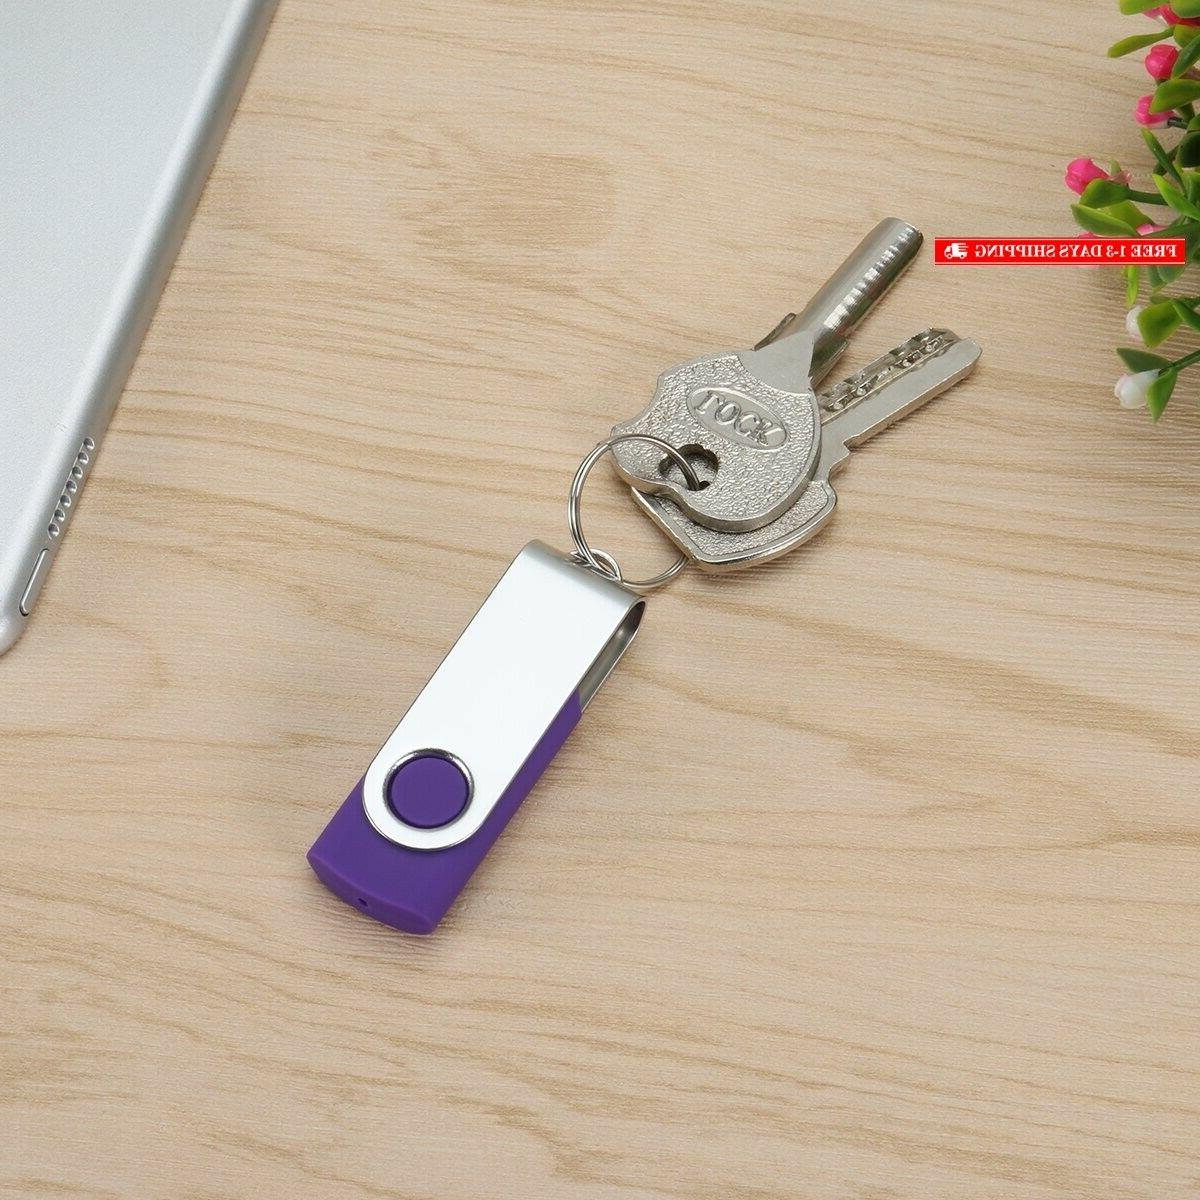 Enfain 8GB Flash Drives 10 Pack in a Compact